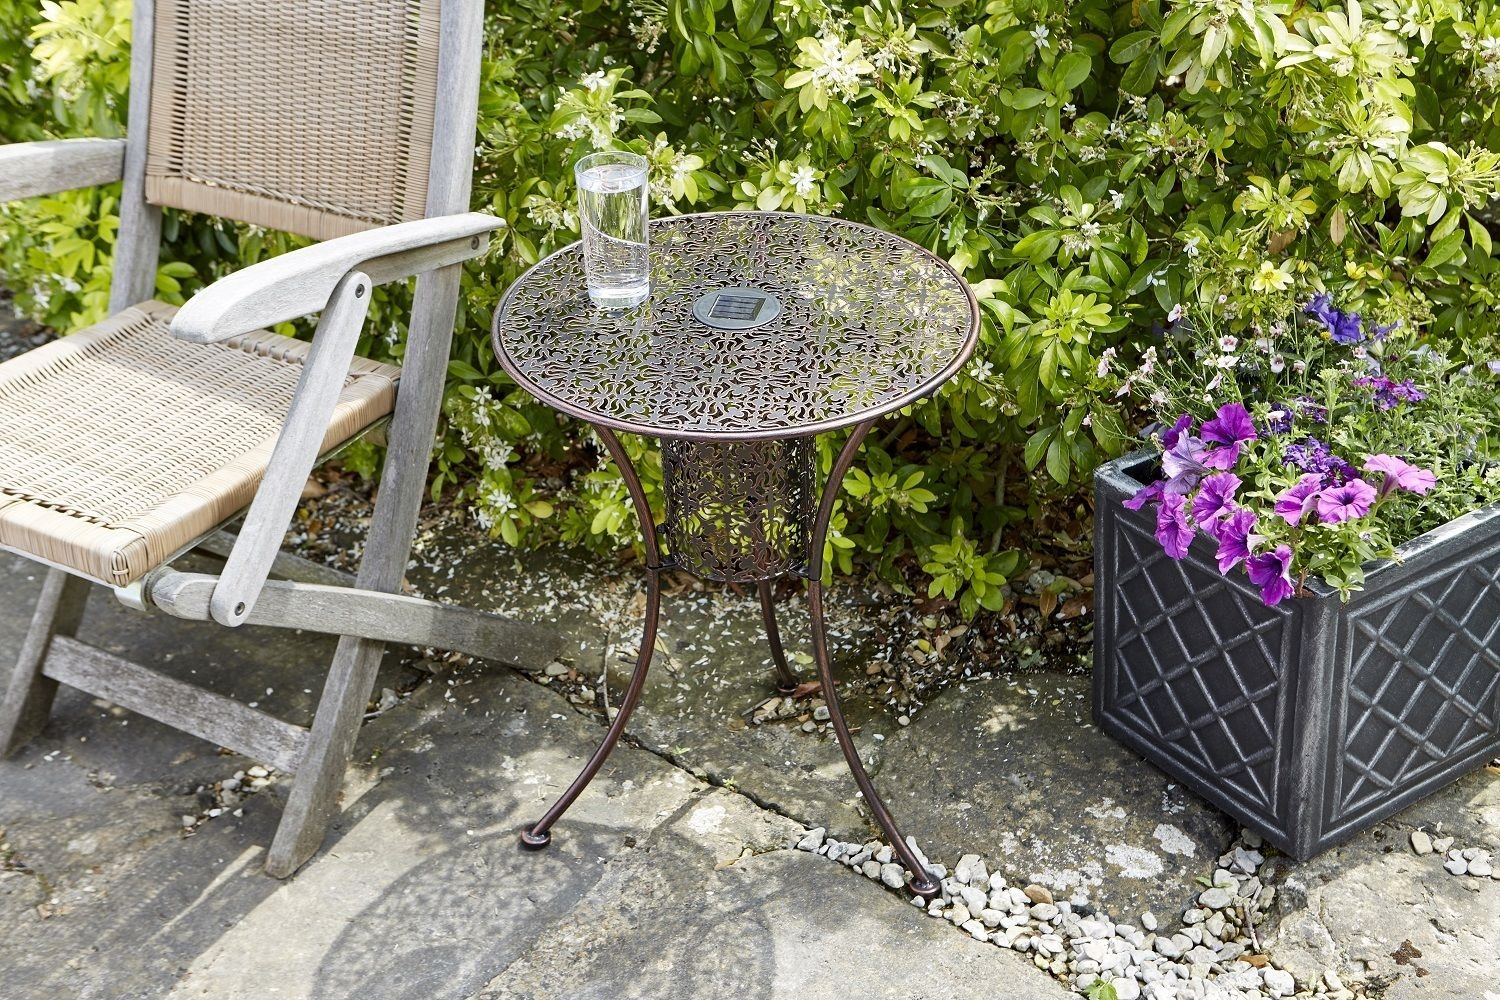 Homezone Garden Mile® Illumina Round Silhouette Patio Bistro Table With LED Lights Decorative Garden Bistro Table Coffee Side Snack Table Garden Furniture Brushed Metal Filigree Finish 45cm Diameter